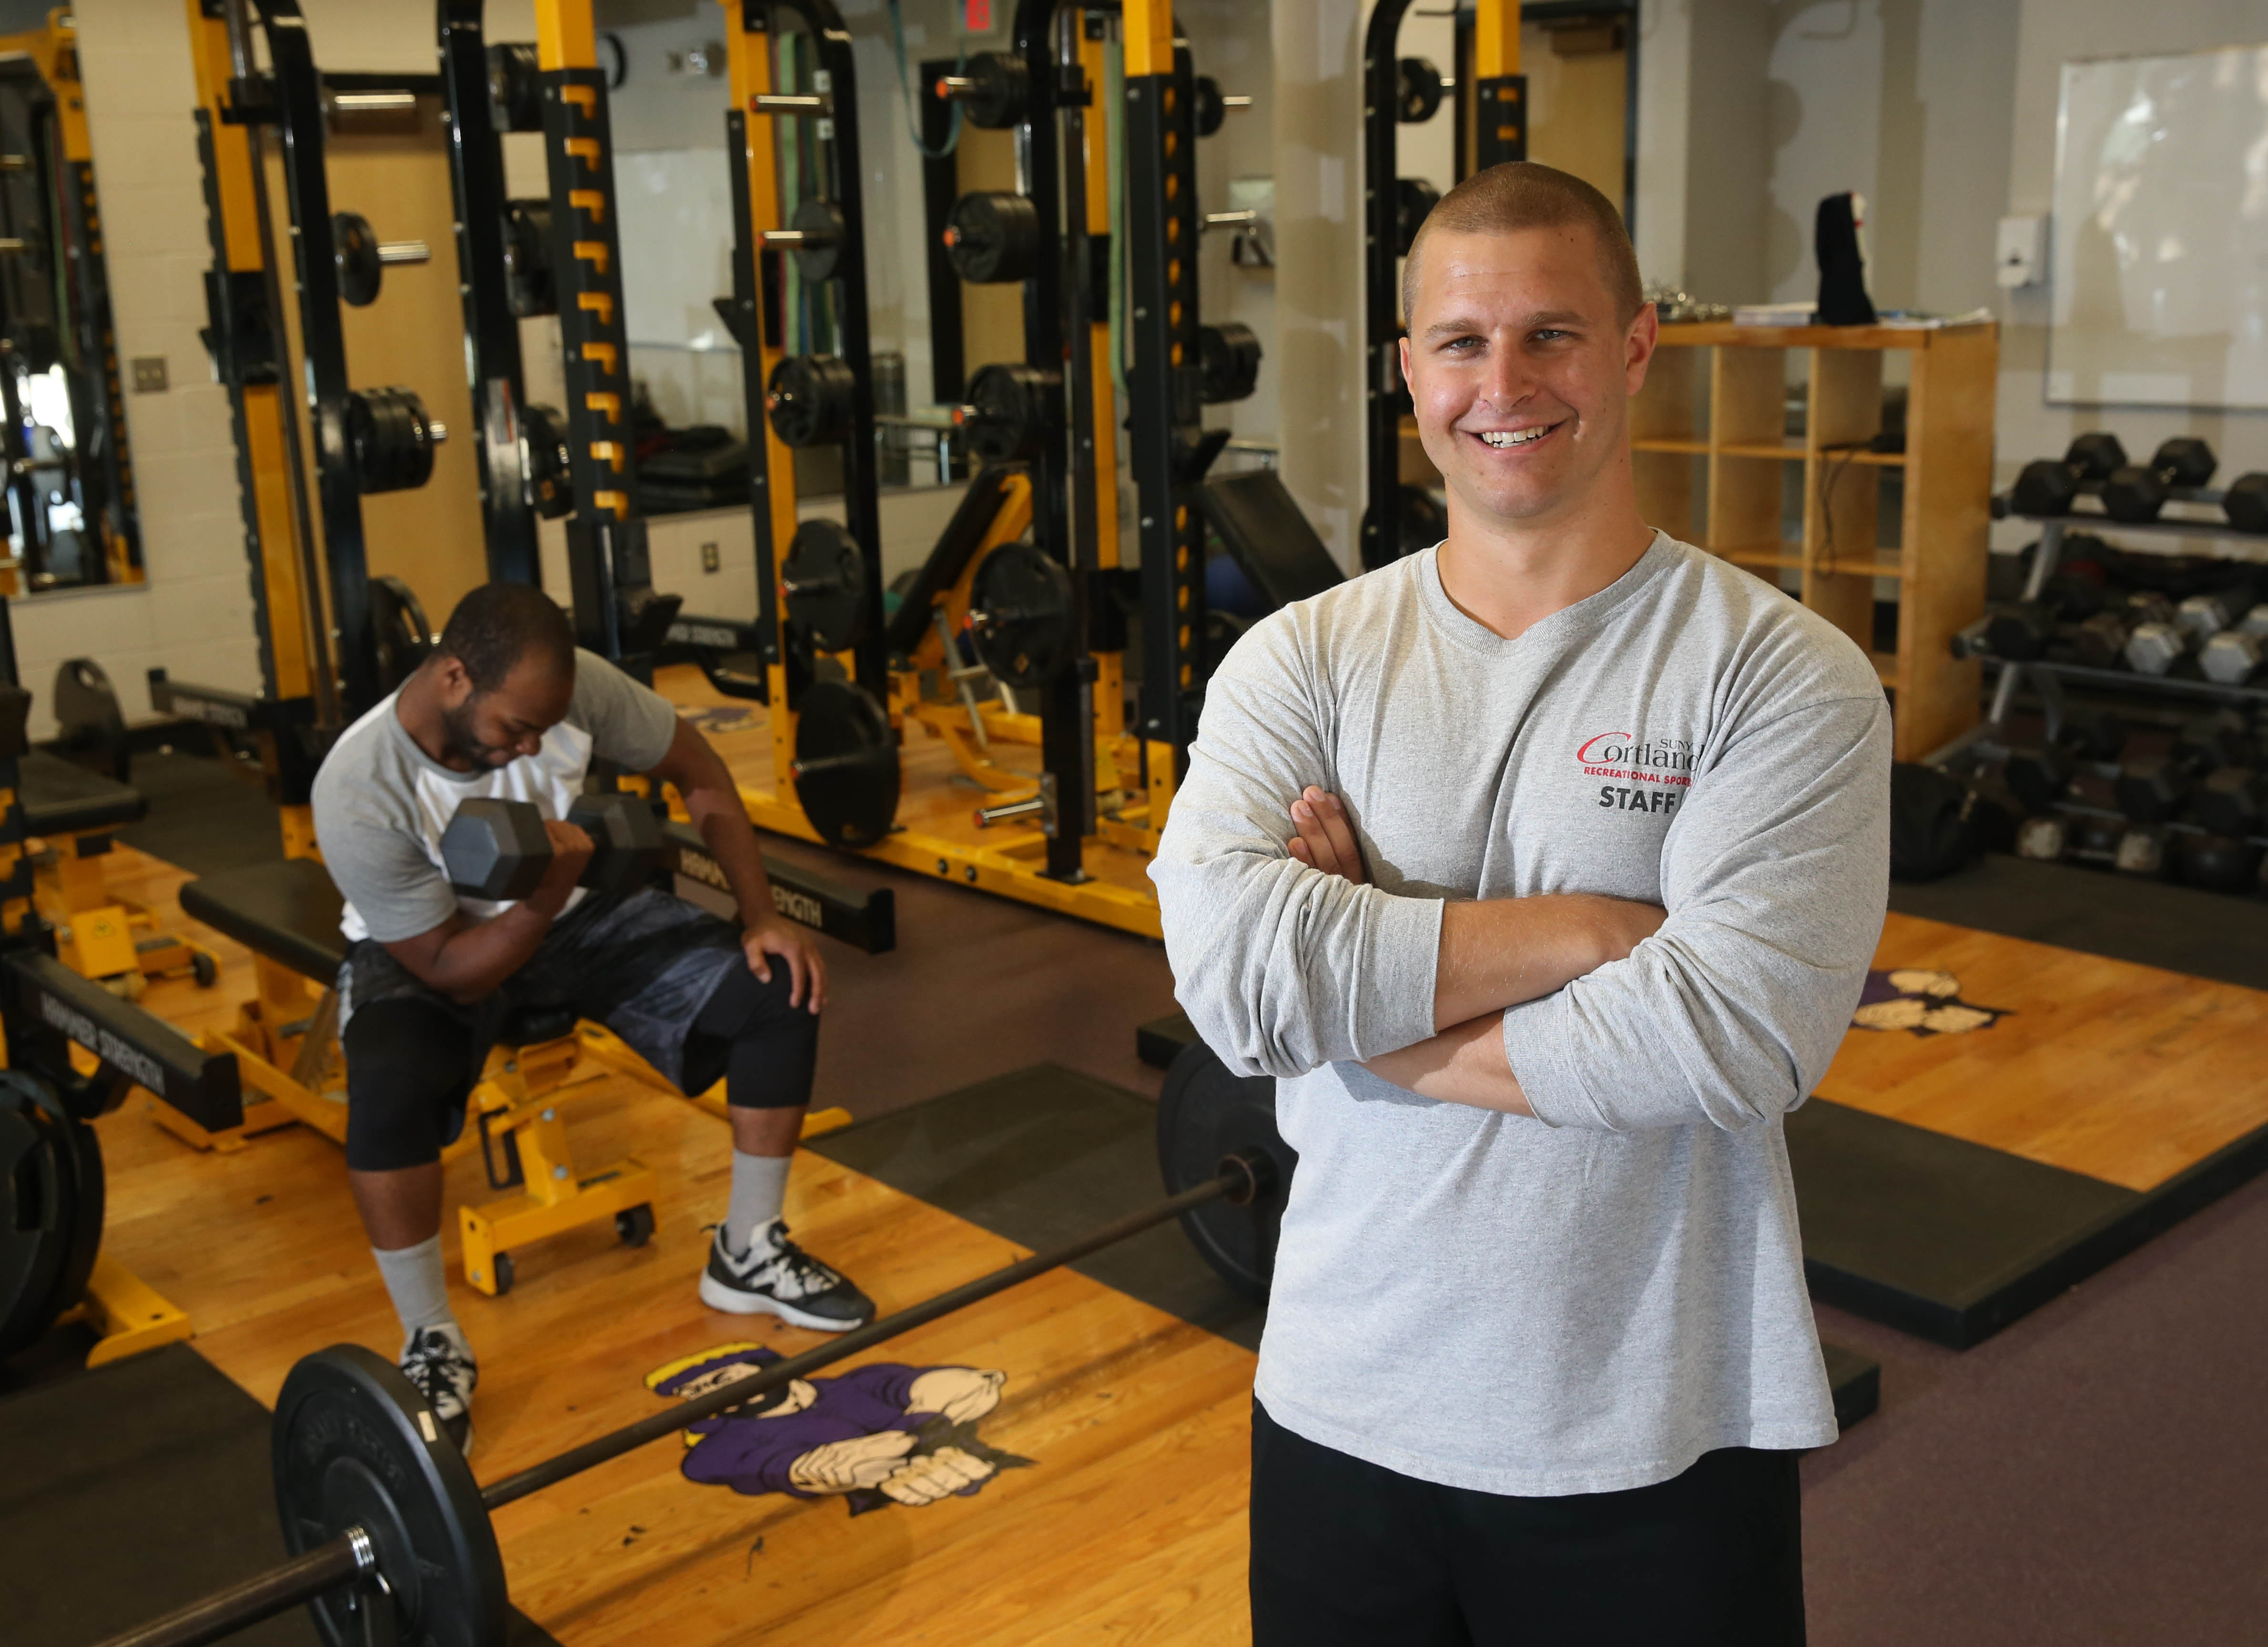 """Once you see what's possible, you start to see results."" – Geoffrey Hurley, personal training teacher and varsity baseball coach at Riverside High School"